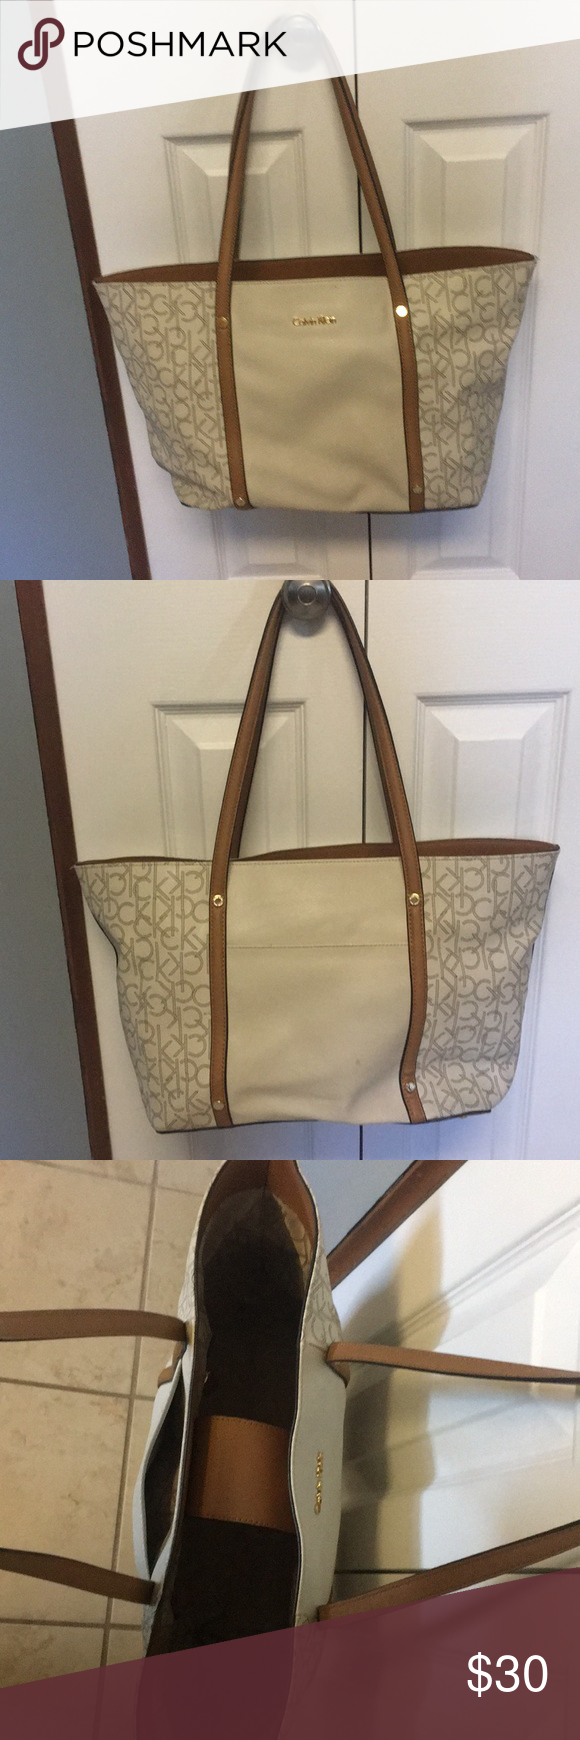 Calvin Klein large tote Gently used large Calvin Klein tote. Very spacious, I used it when traveling, it will hold everything but the kitchen sink! Calvin Klein Bags Totes